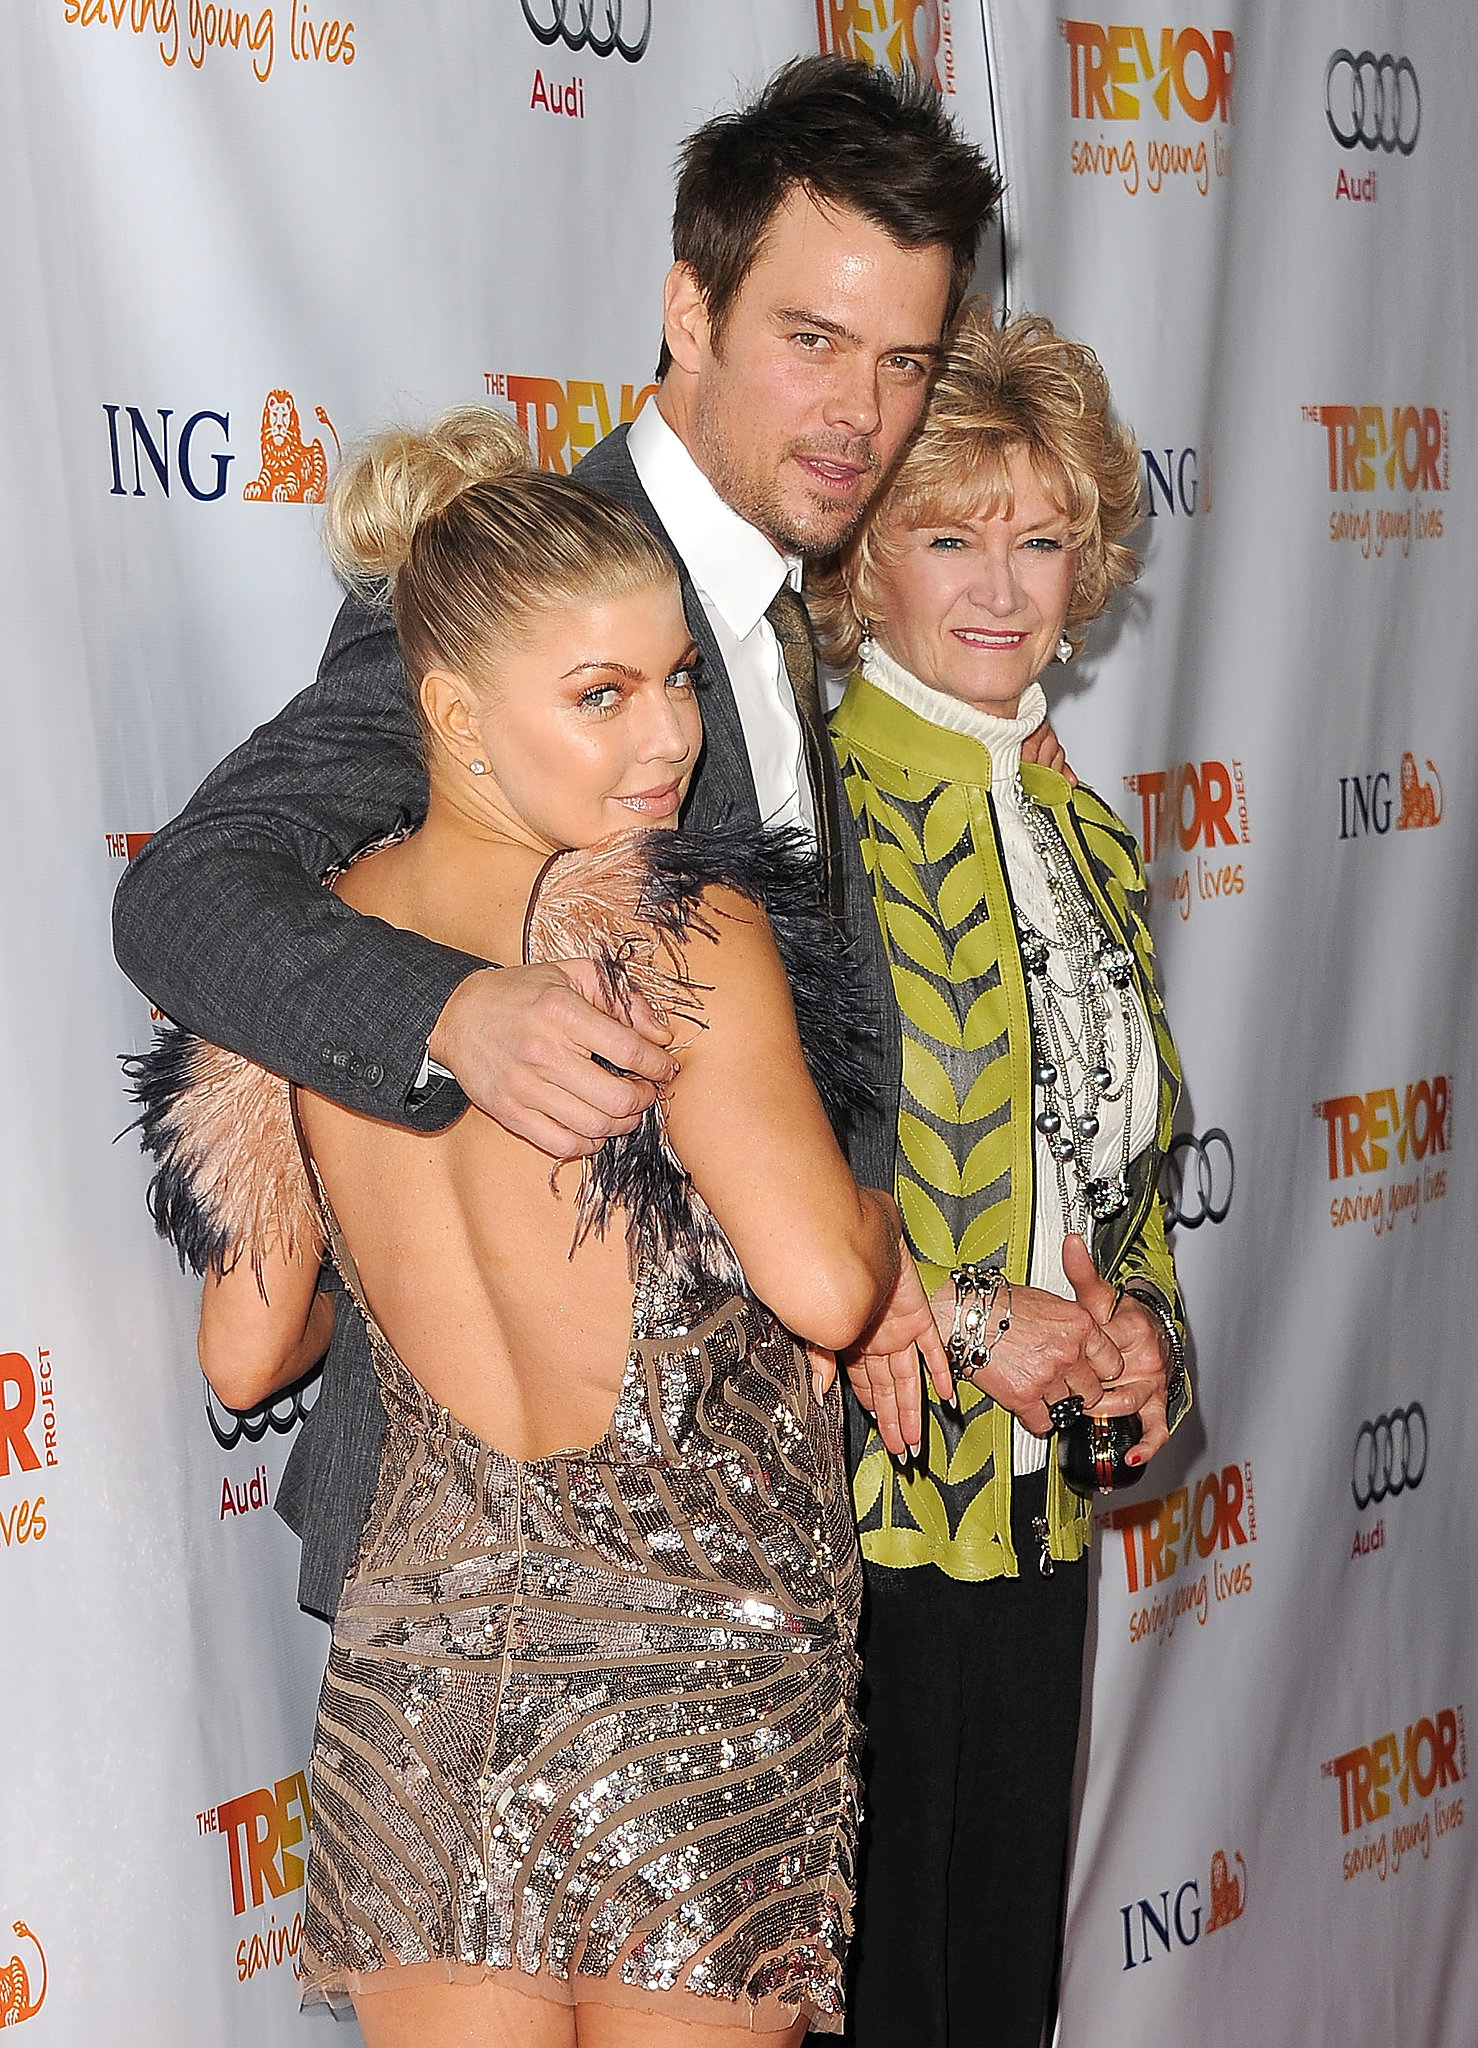 Fergie and Josh Duhamel posed with Josh's mom, Bonny, at a charity event in LA in December 2011.